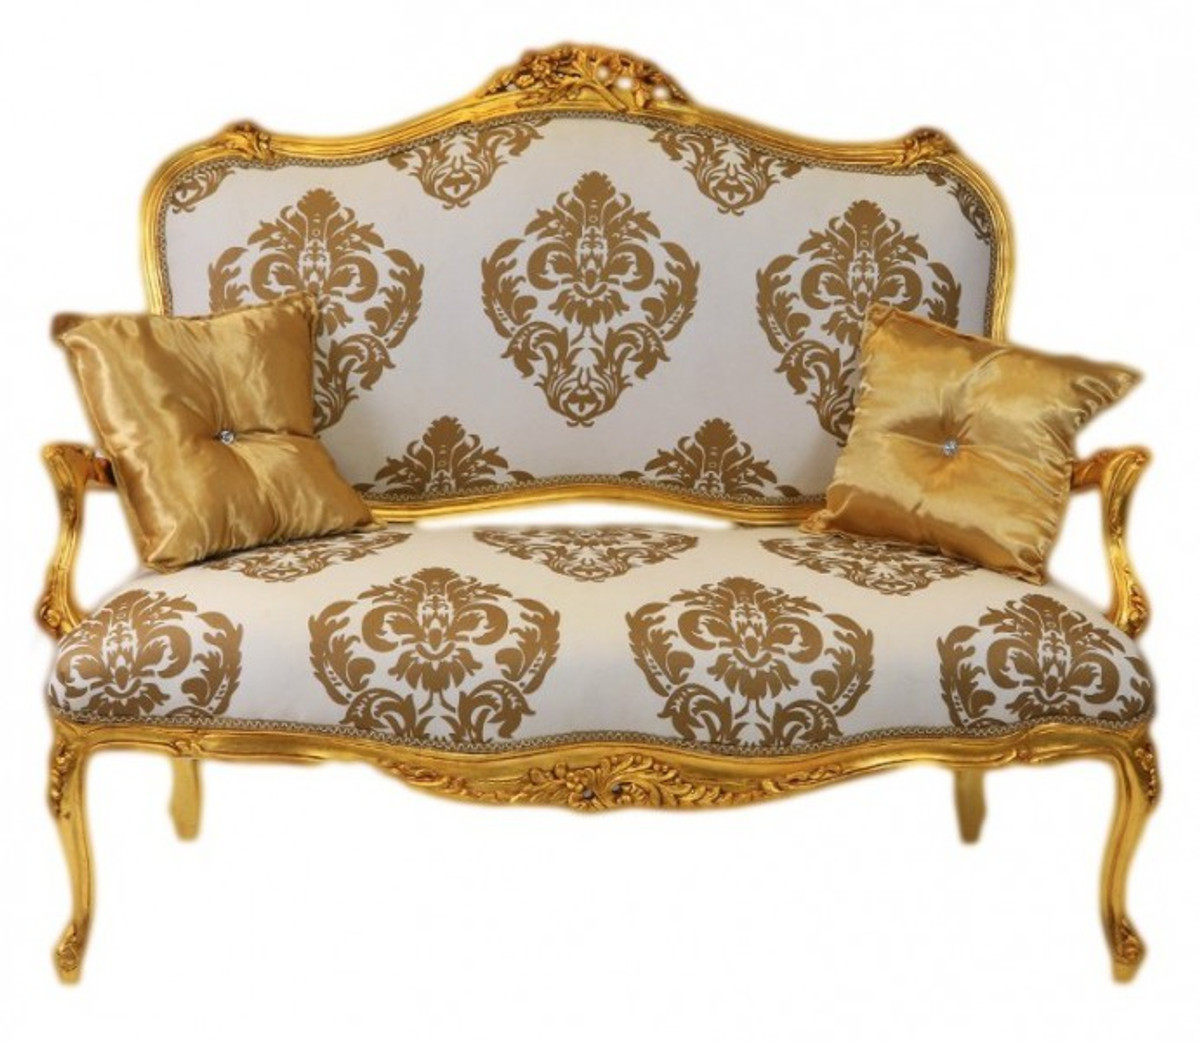 Casa padrino baroque sofa white gold pattern gold for Sofa barock